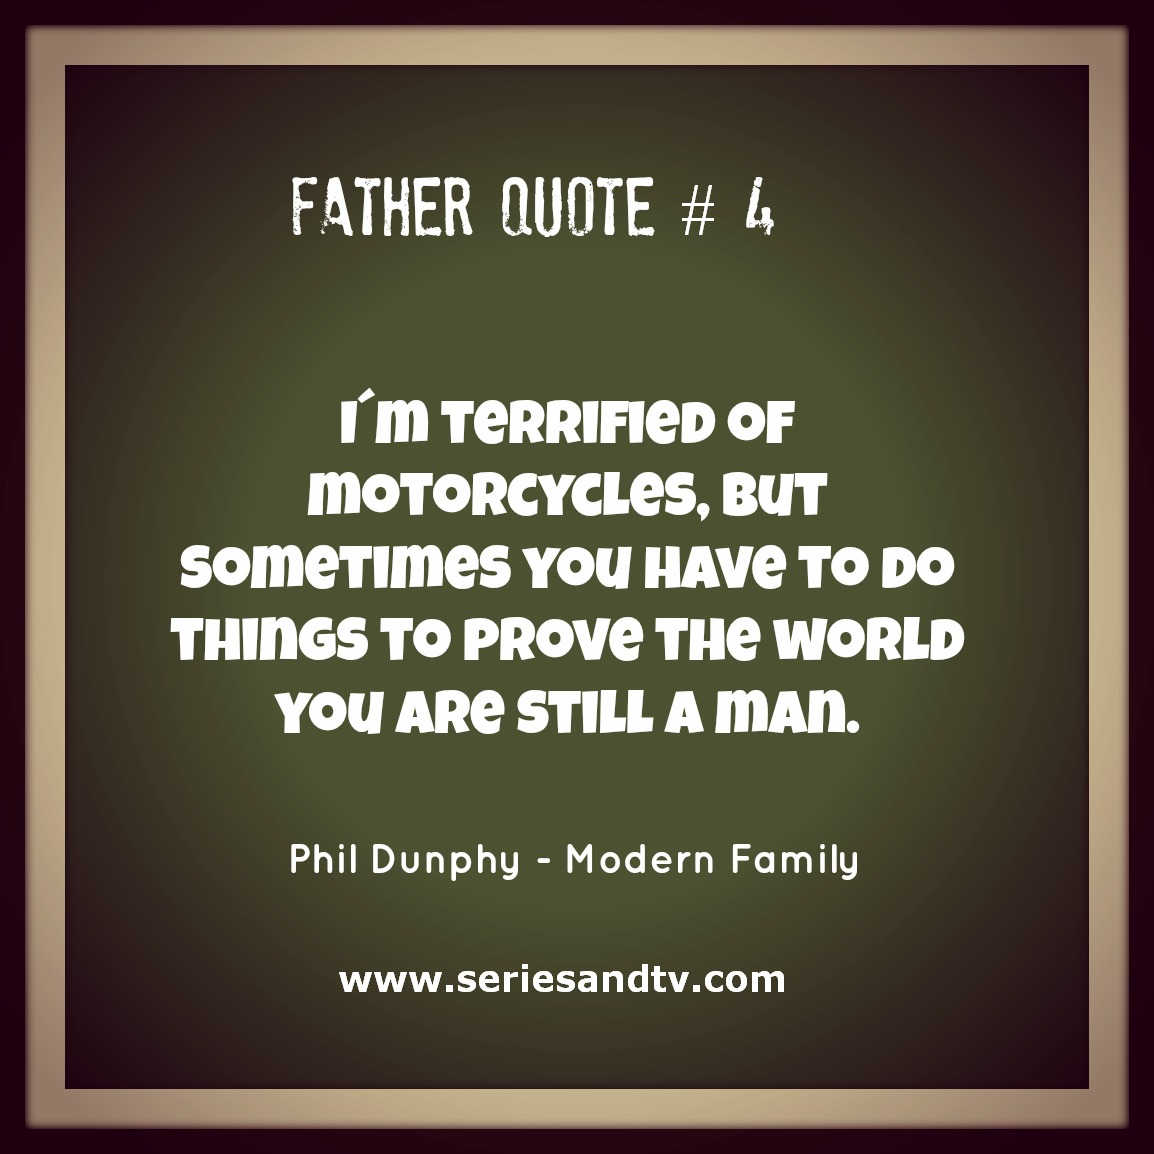 Family Life Quotes Best Quotes From Modern Family´s Garage Yard Sale Episode  Series